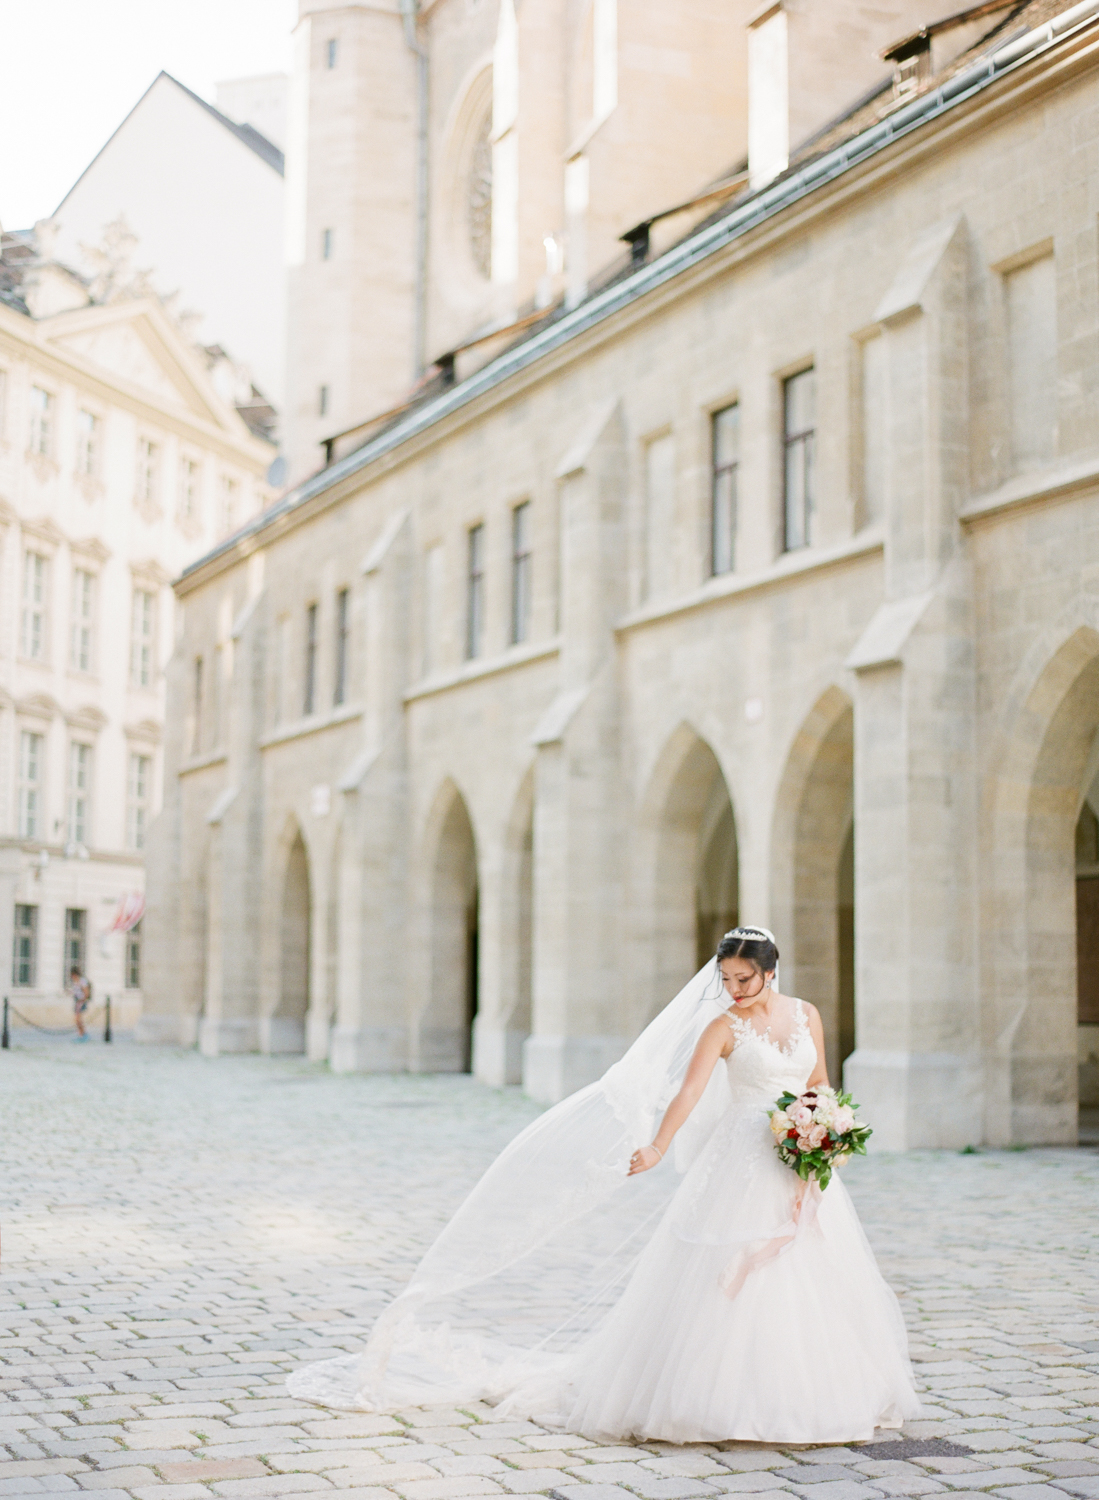 palais pallavicini wedding hotel imperial vienna wedding photographer nikol bodnarova photography 440.JPG